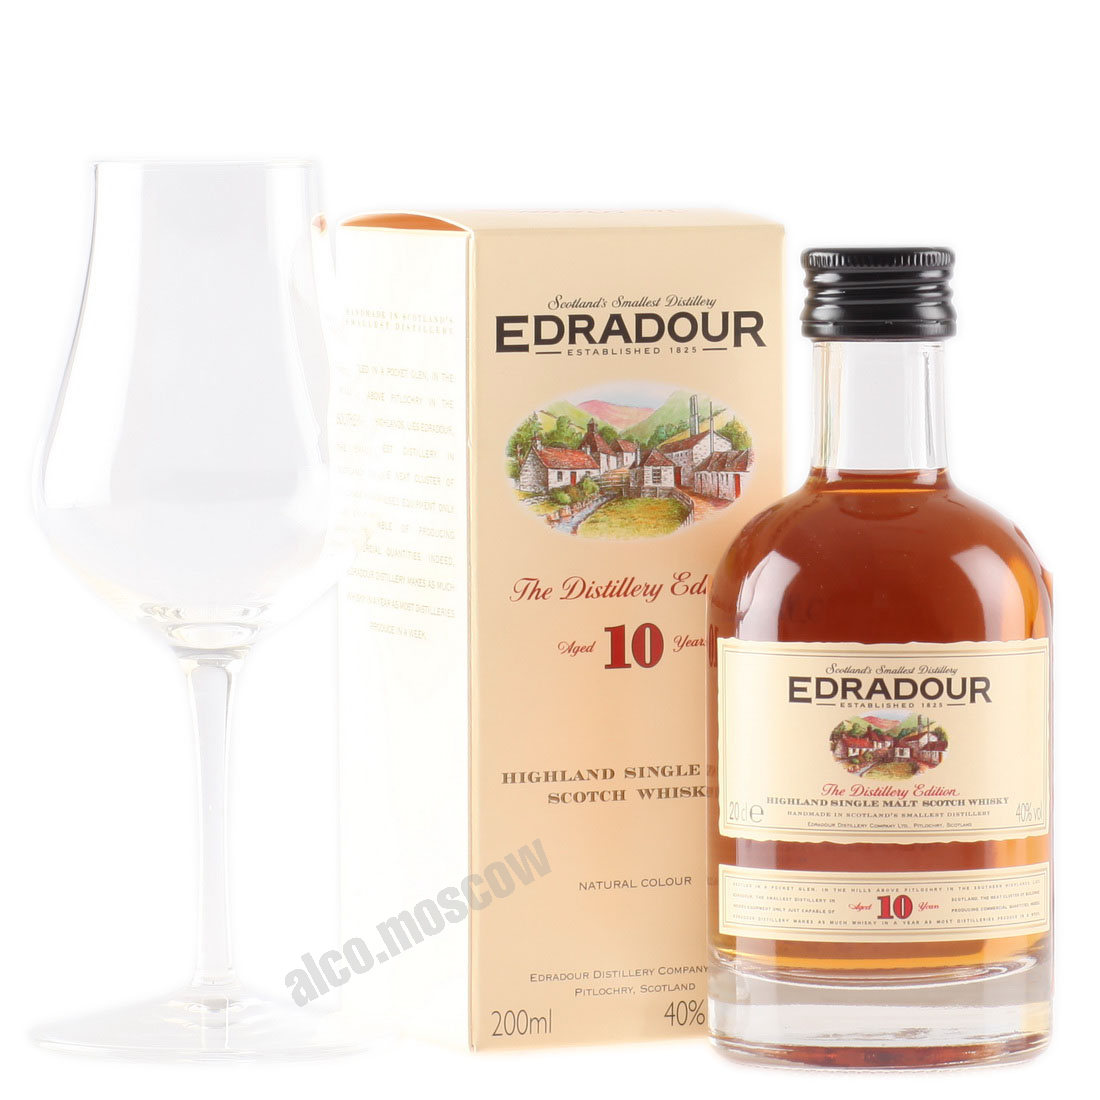 Edradour Edradour 10 years 200 ml шотландский виски Эдраду 10 лет 0.2 л